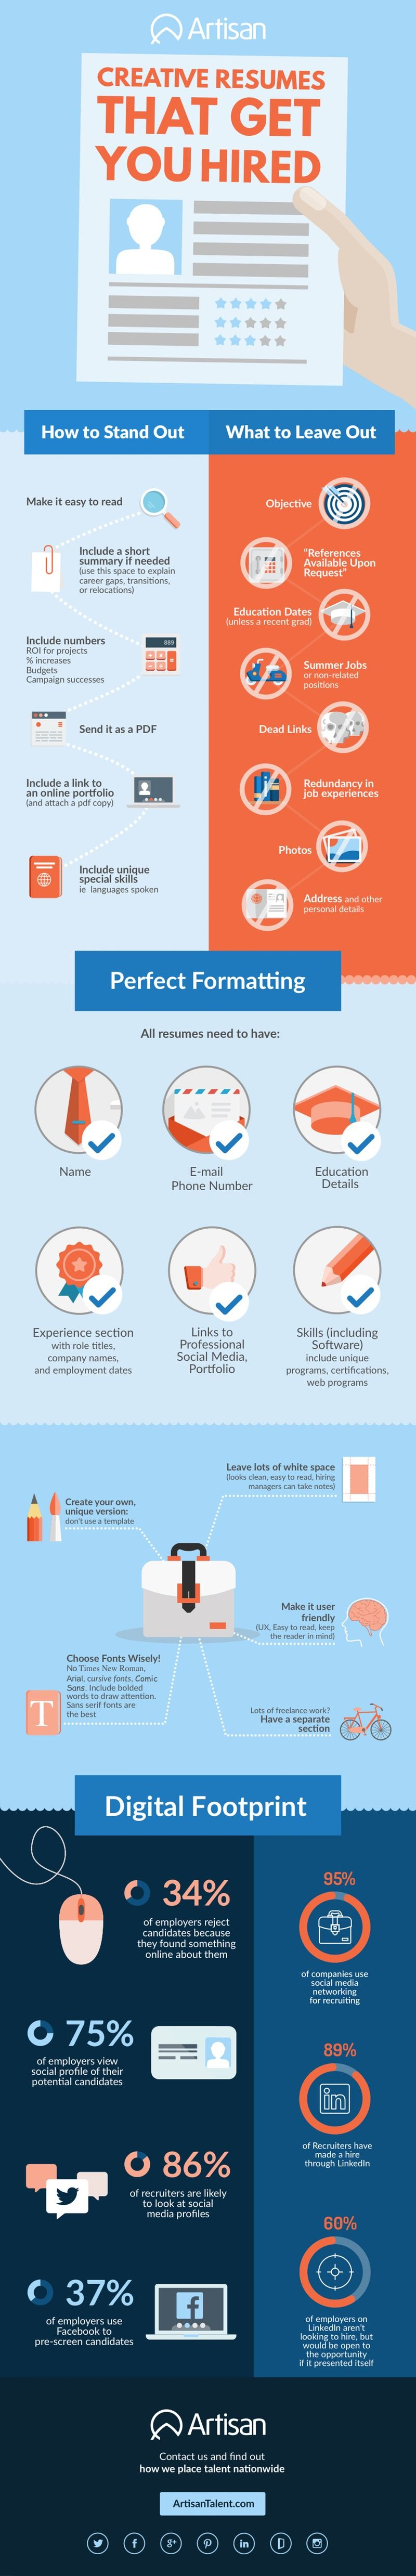 creative resumes that get you hired  infographic